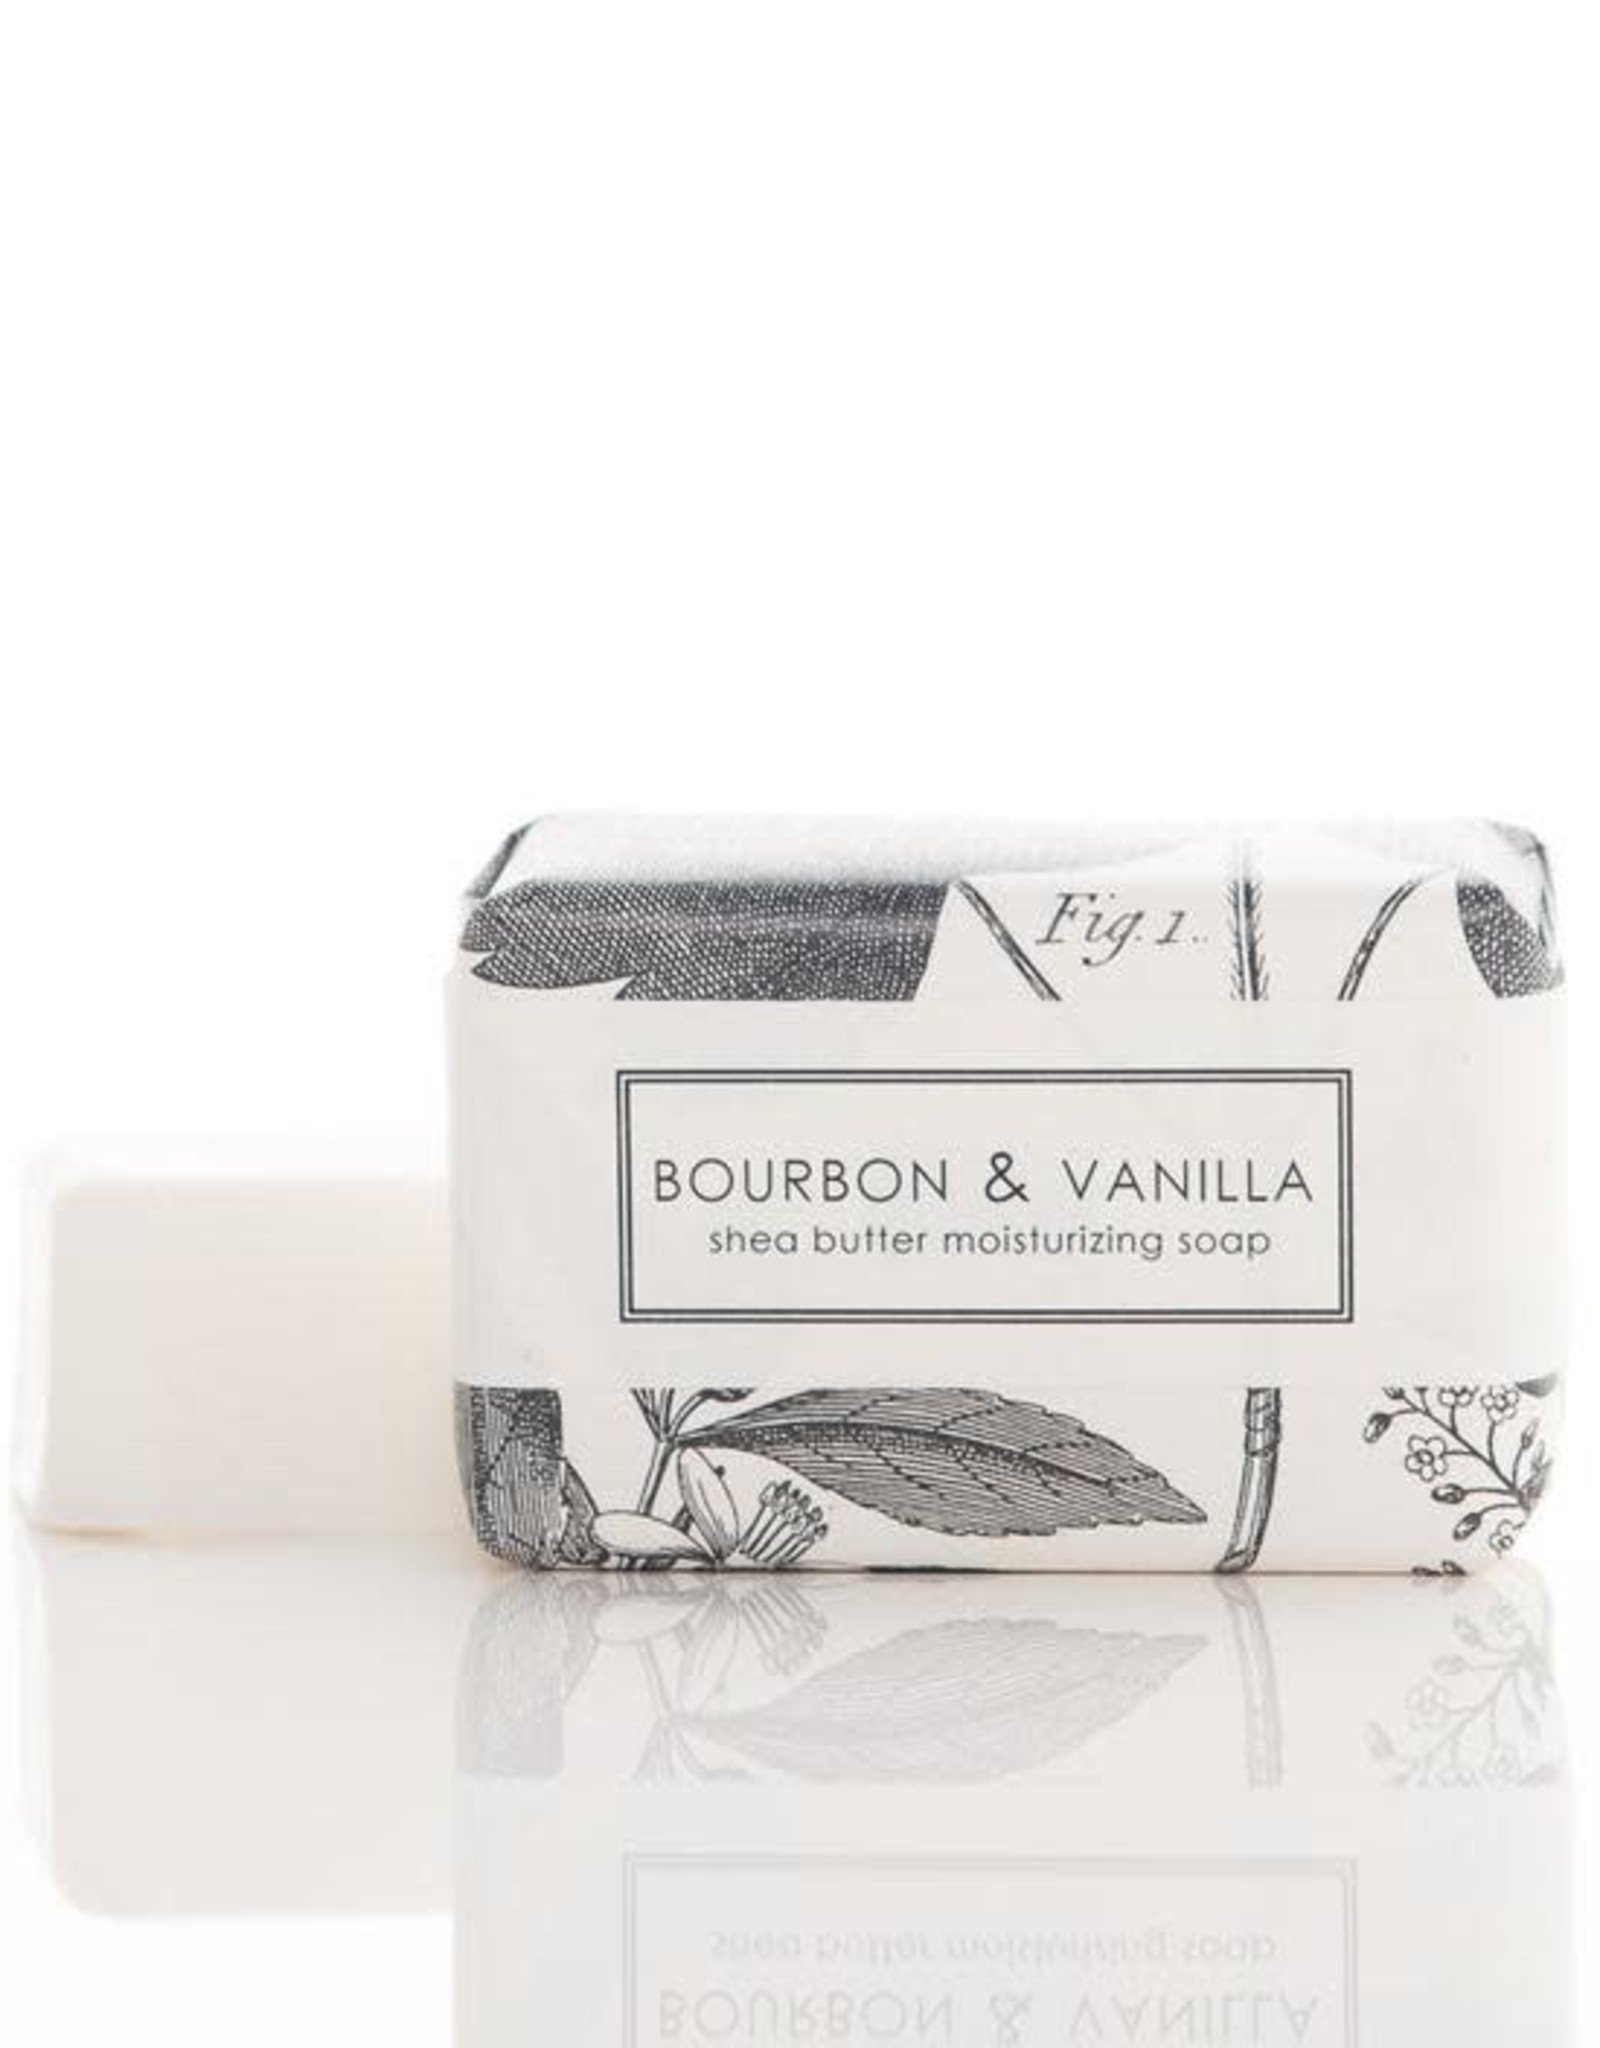 Formulary 55 Bourbon & Vanilla Soap